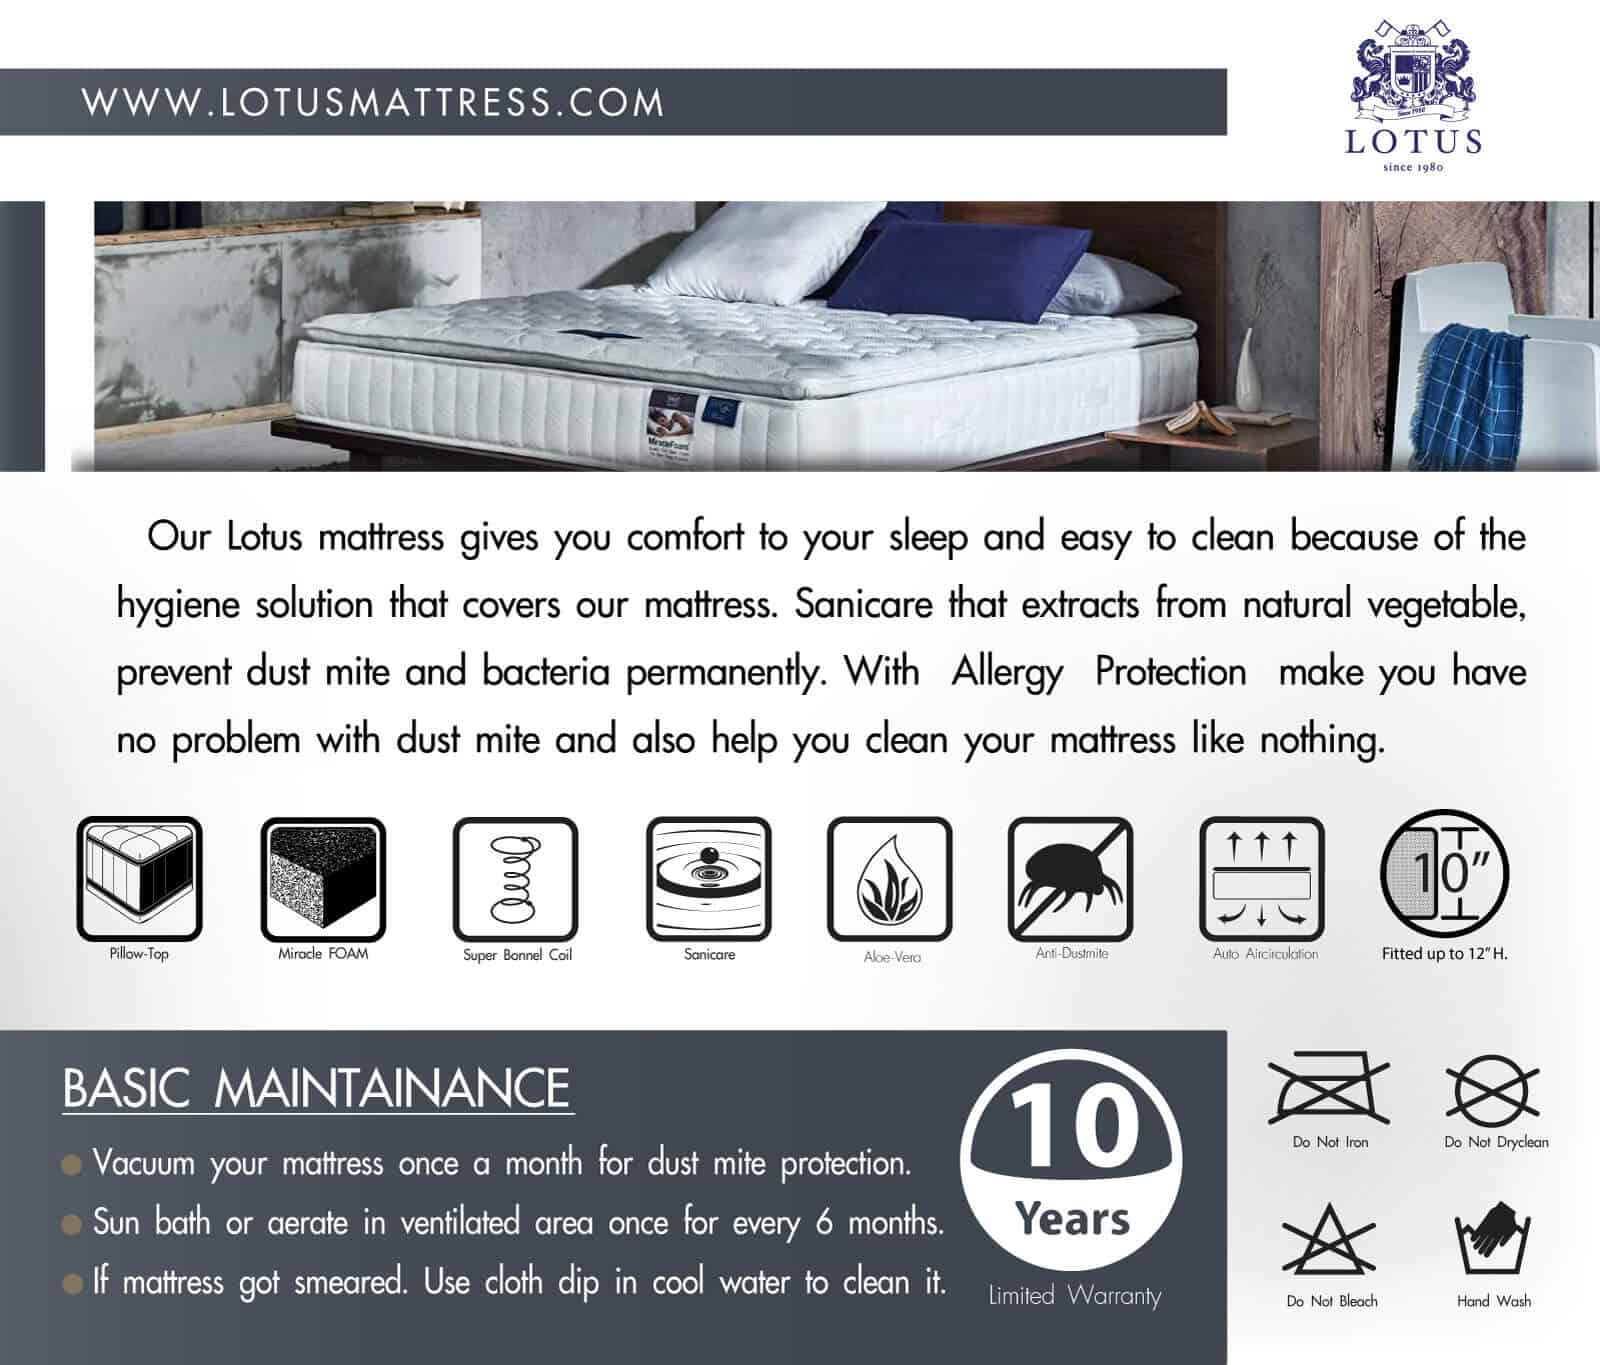 Lotus Spring Mattress Aritz – Extra Firm Mattress – Thickness 10 inches – Warranty 10 years 12